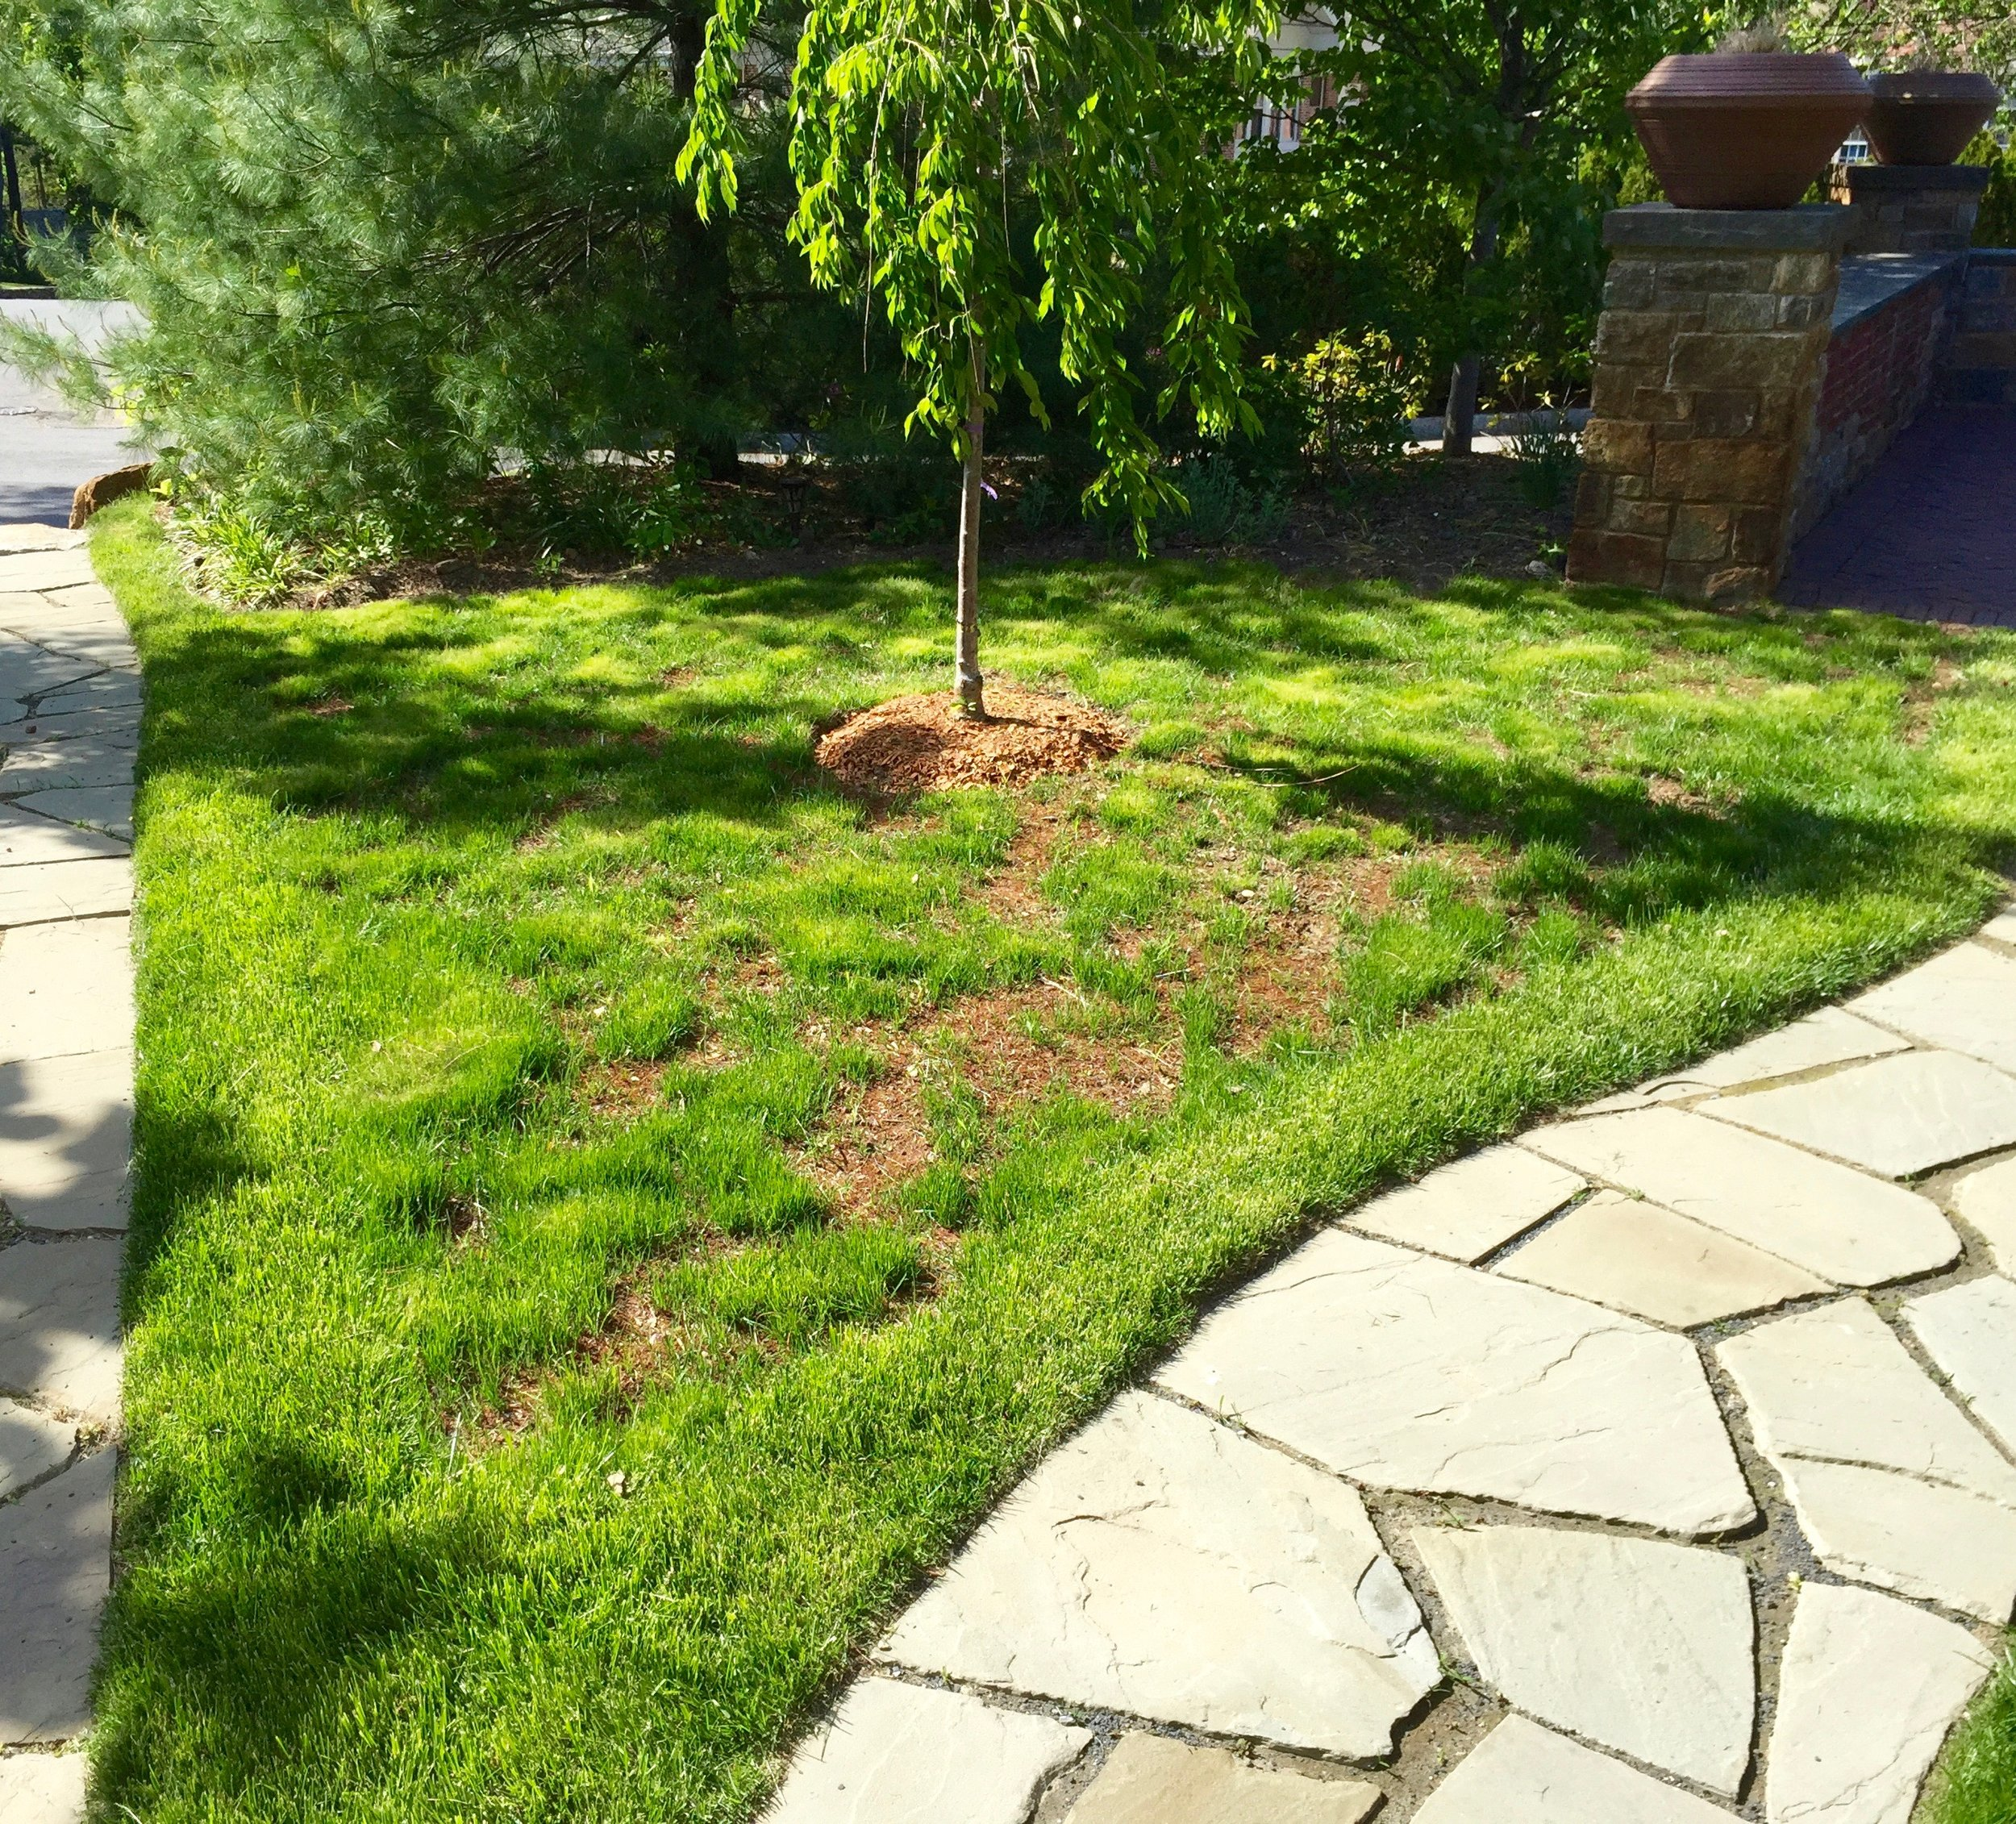 An installation replacing lawn with a perennial garden